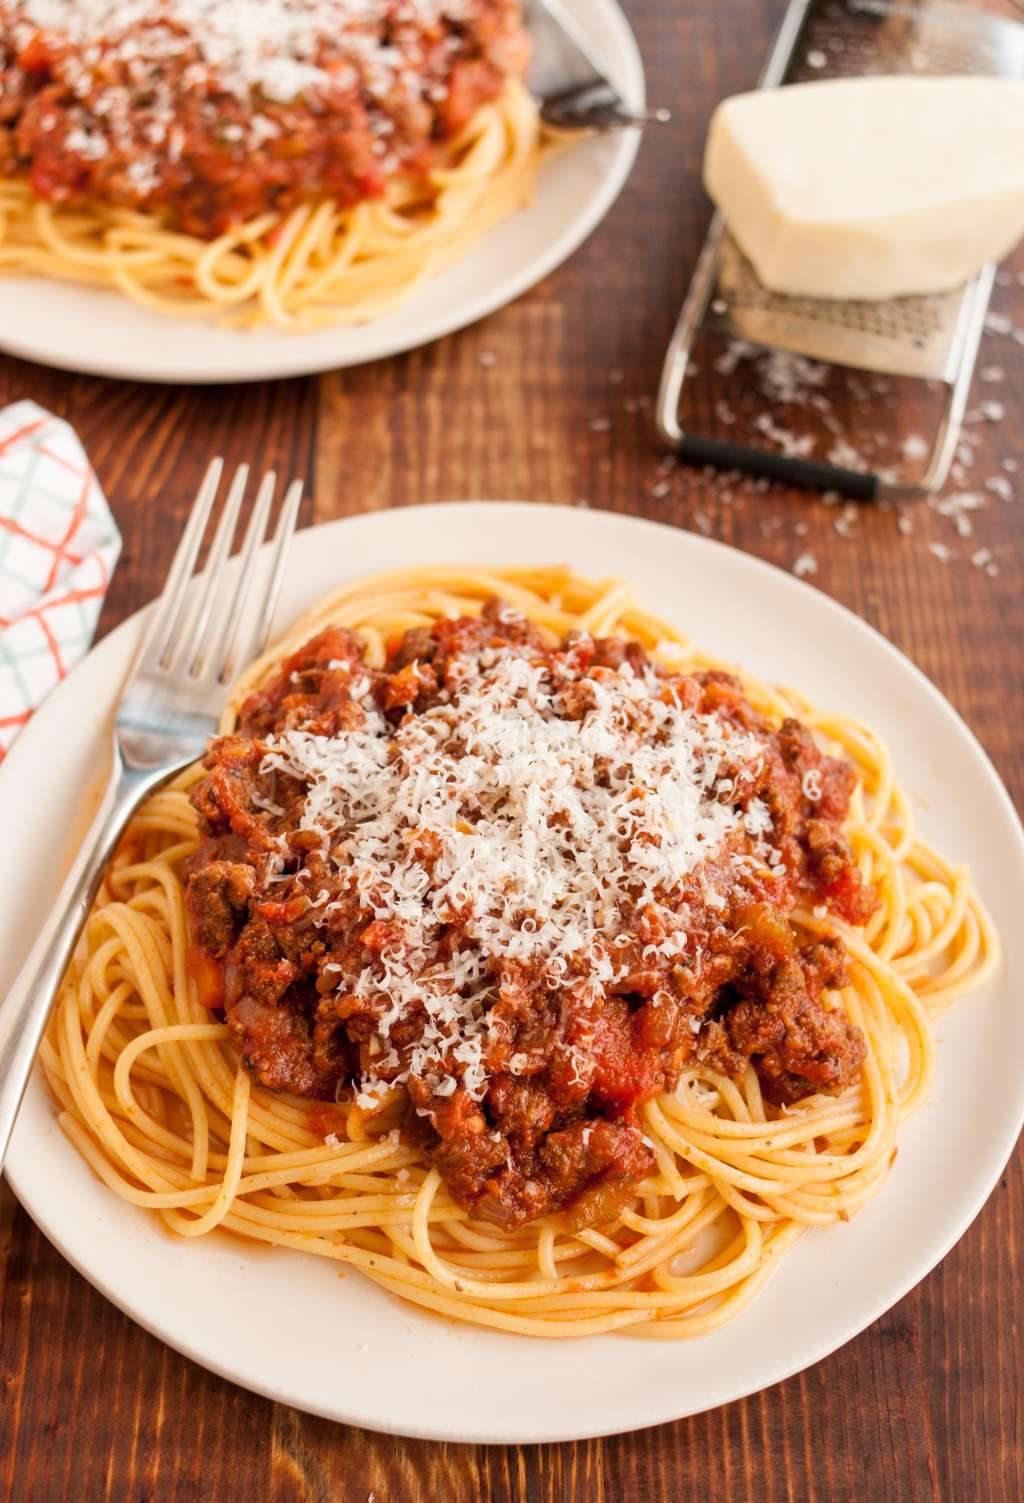 This Slow Cooker Bolognese Sauce Is Comfort Food at Its Best